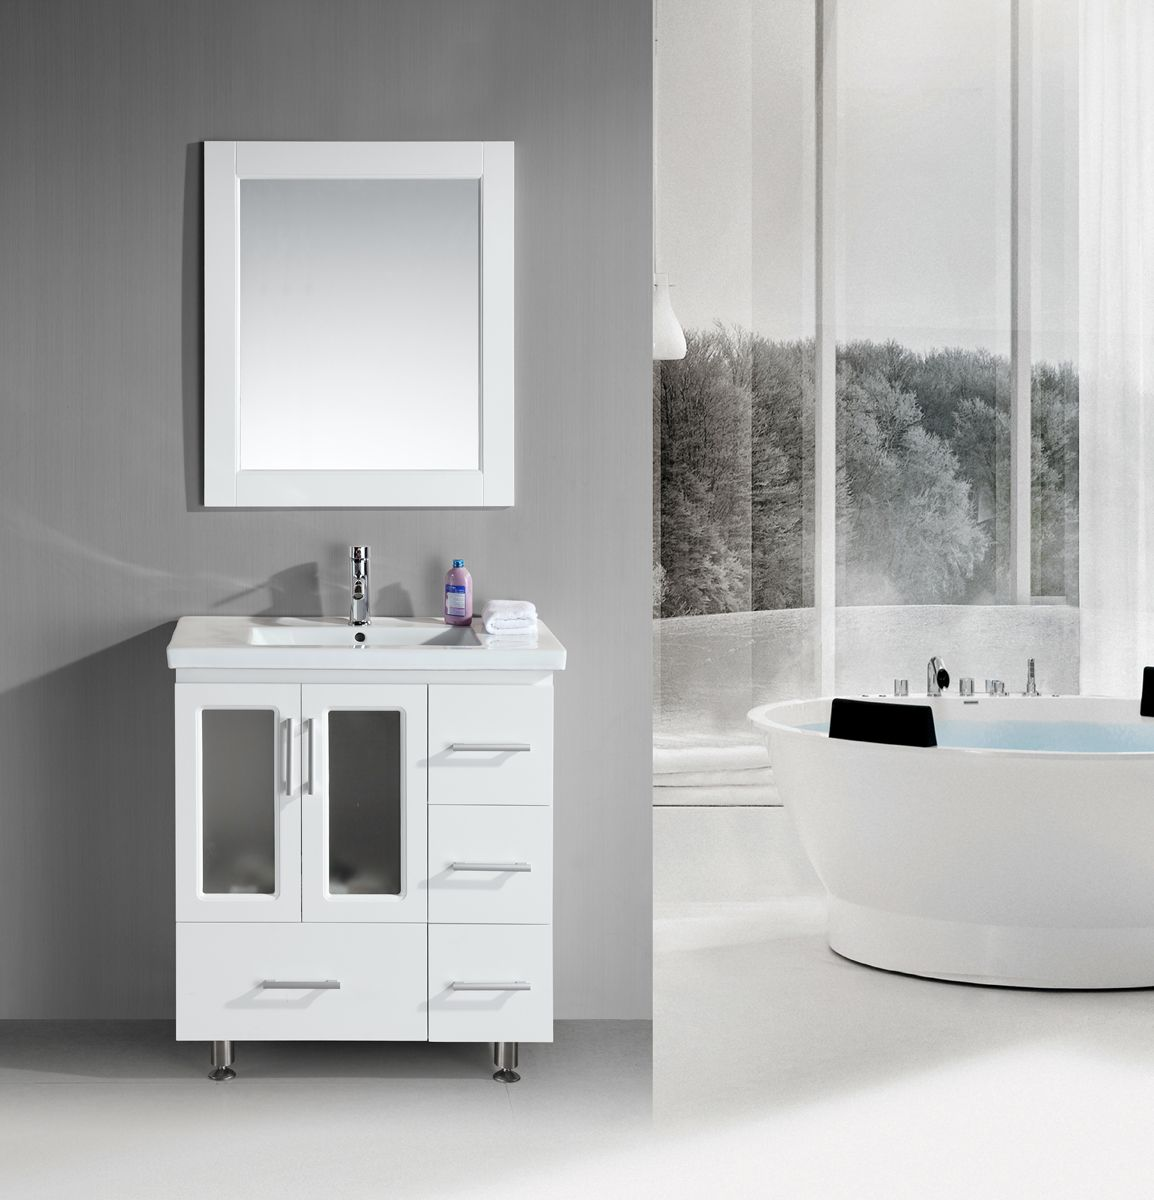 Superior 32 Inch Contemporary White Bathroom Vanity Set With Porcelain Sink Top.  This White Bathroom Vanity